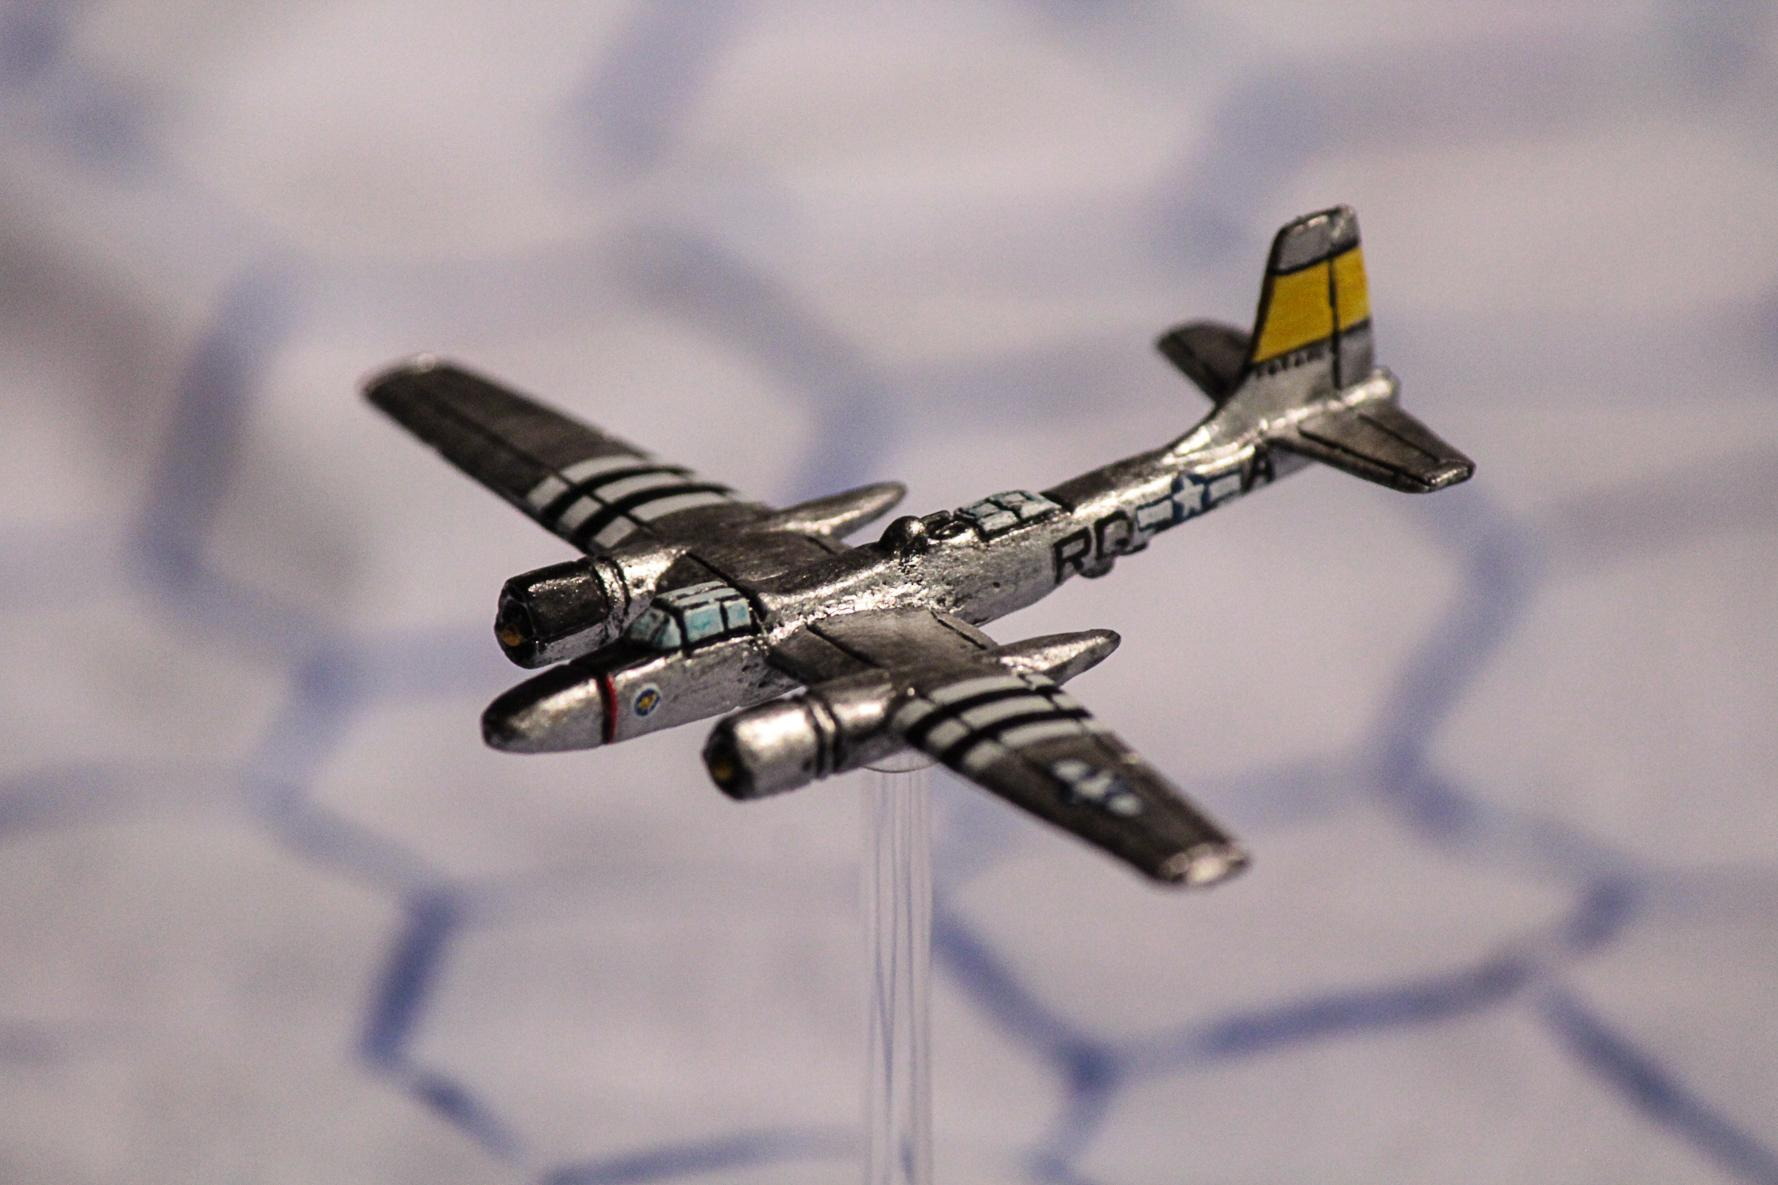 1:300, 6mm, Airborne, Aircraft, Airplane, Aviation, Check Your 6!, Fliers, World War 2